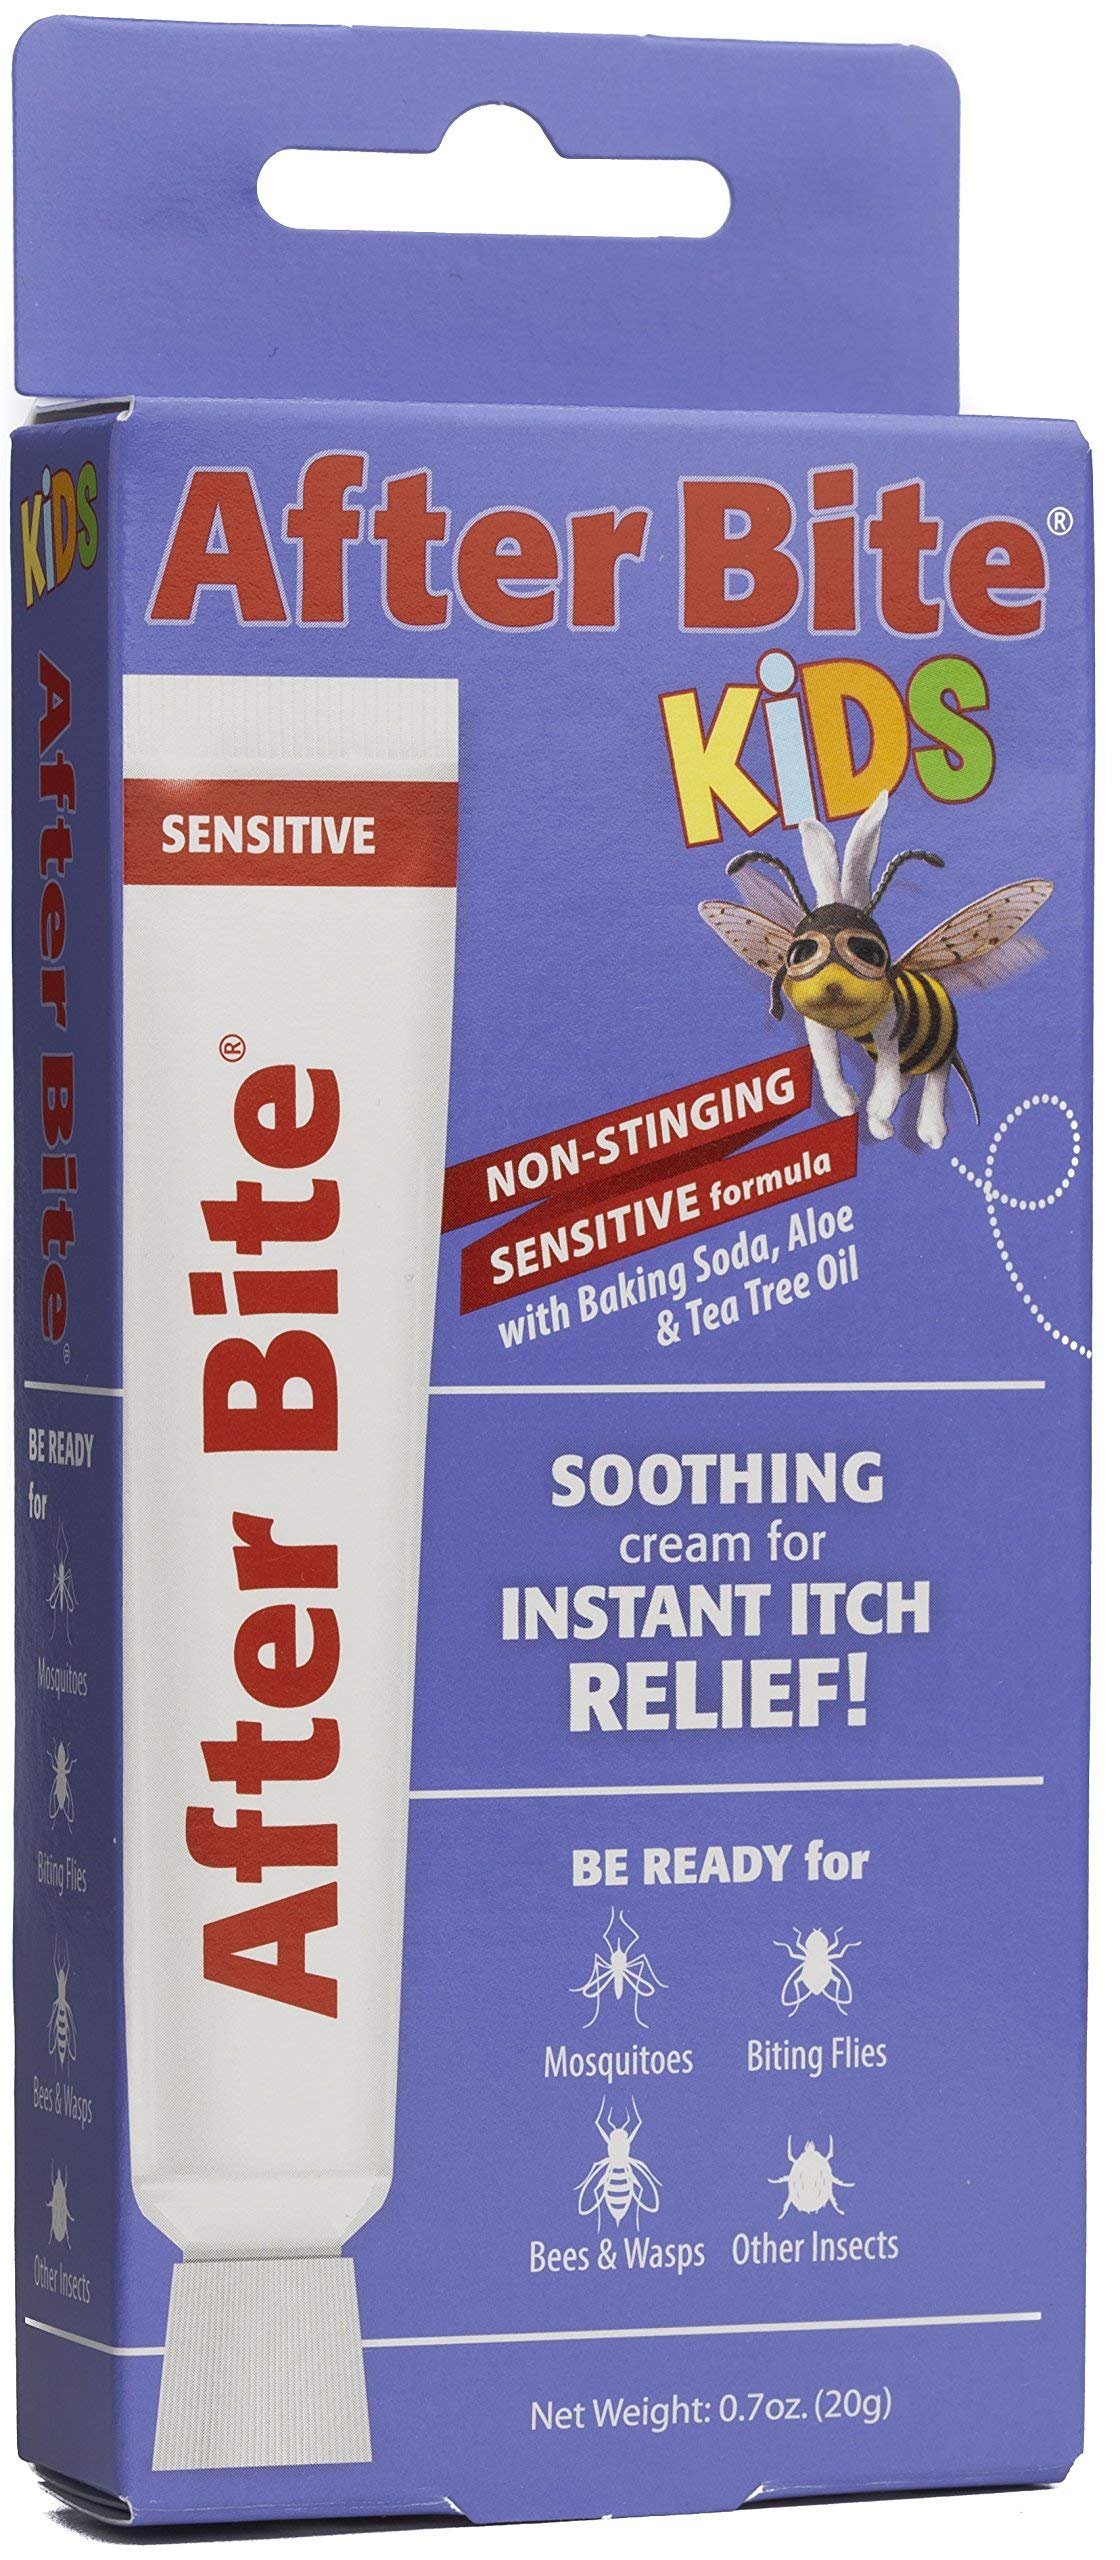 After Bite Kids, Sensitive Formula, Pharmacist Preferred Insect Bite & Sting Treatment, Natural Healing, Aloe Vera, Skin Protectant, Portable Instant Relief, Stop Itching Cream, 0.7-Ounce by After Bite